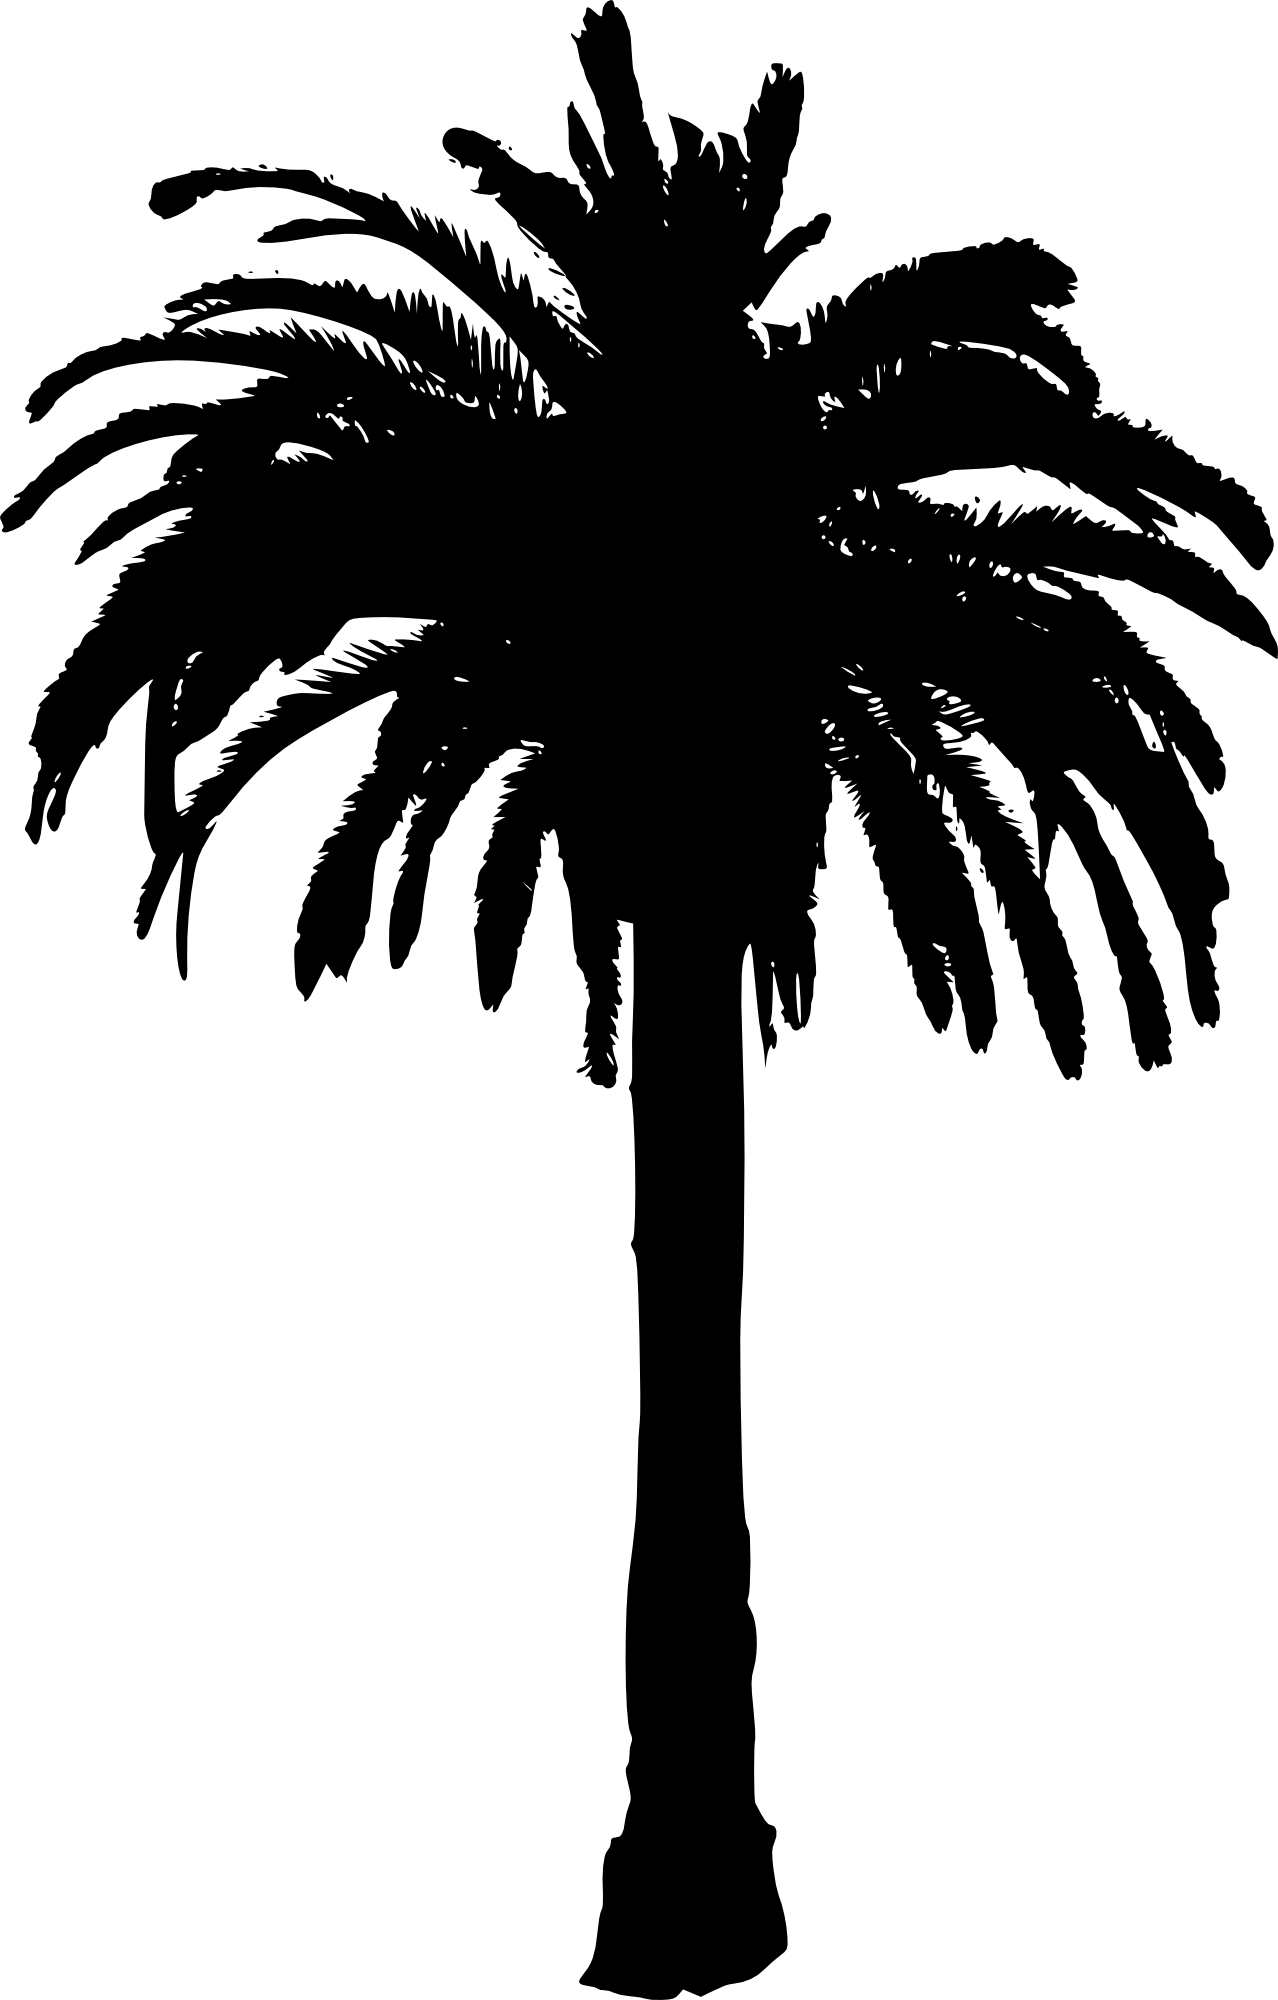 Palm Tree Silhouette Free